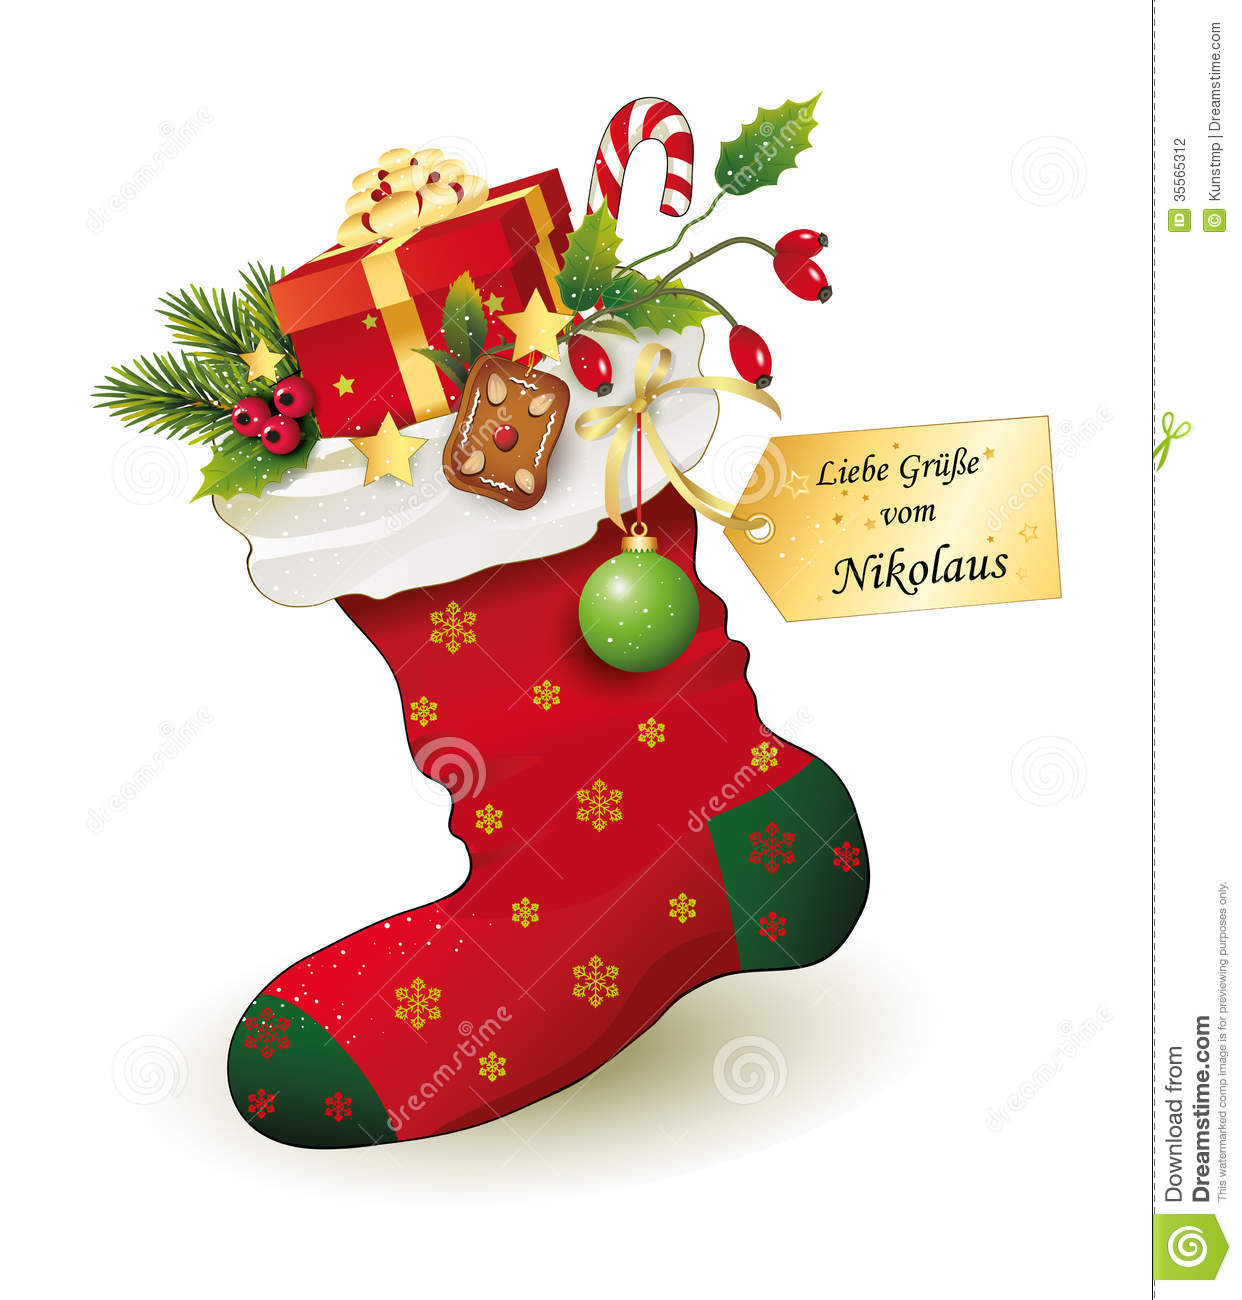 Socks clipart santa claus. Red christmas stocking with png transparent download